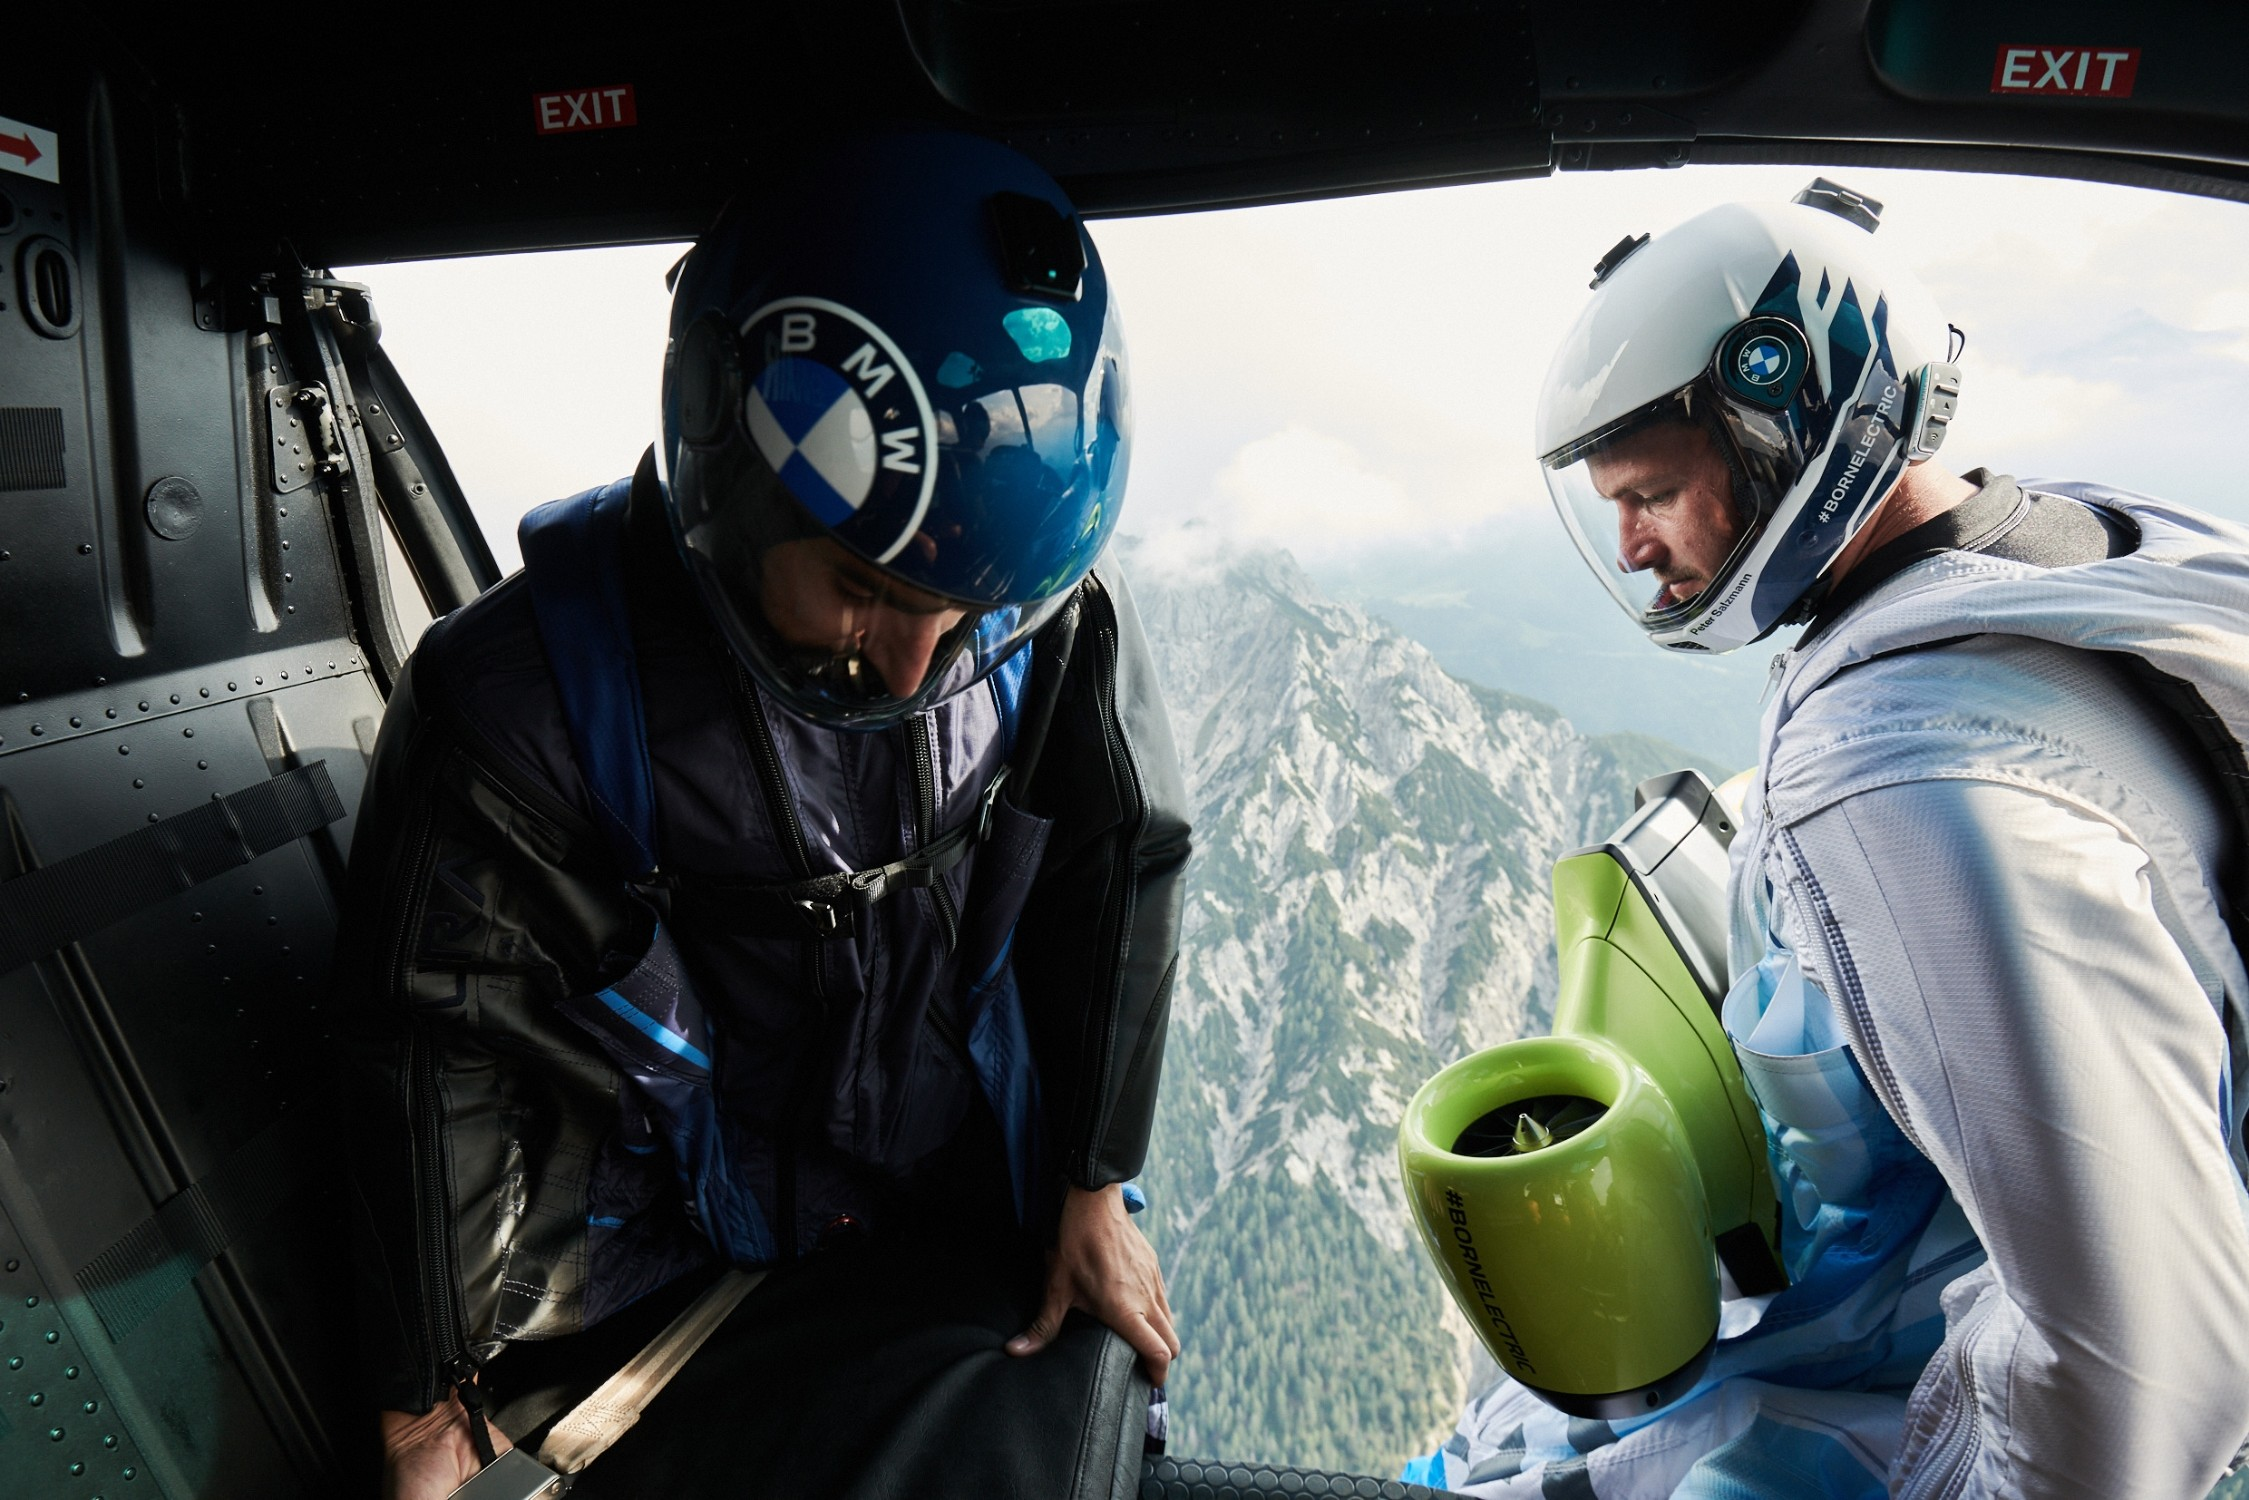 Preparing to jump with the BMW Wingsuit